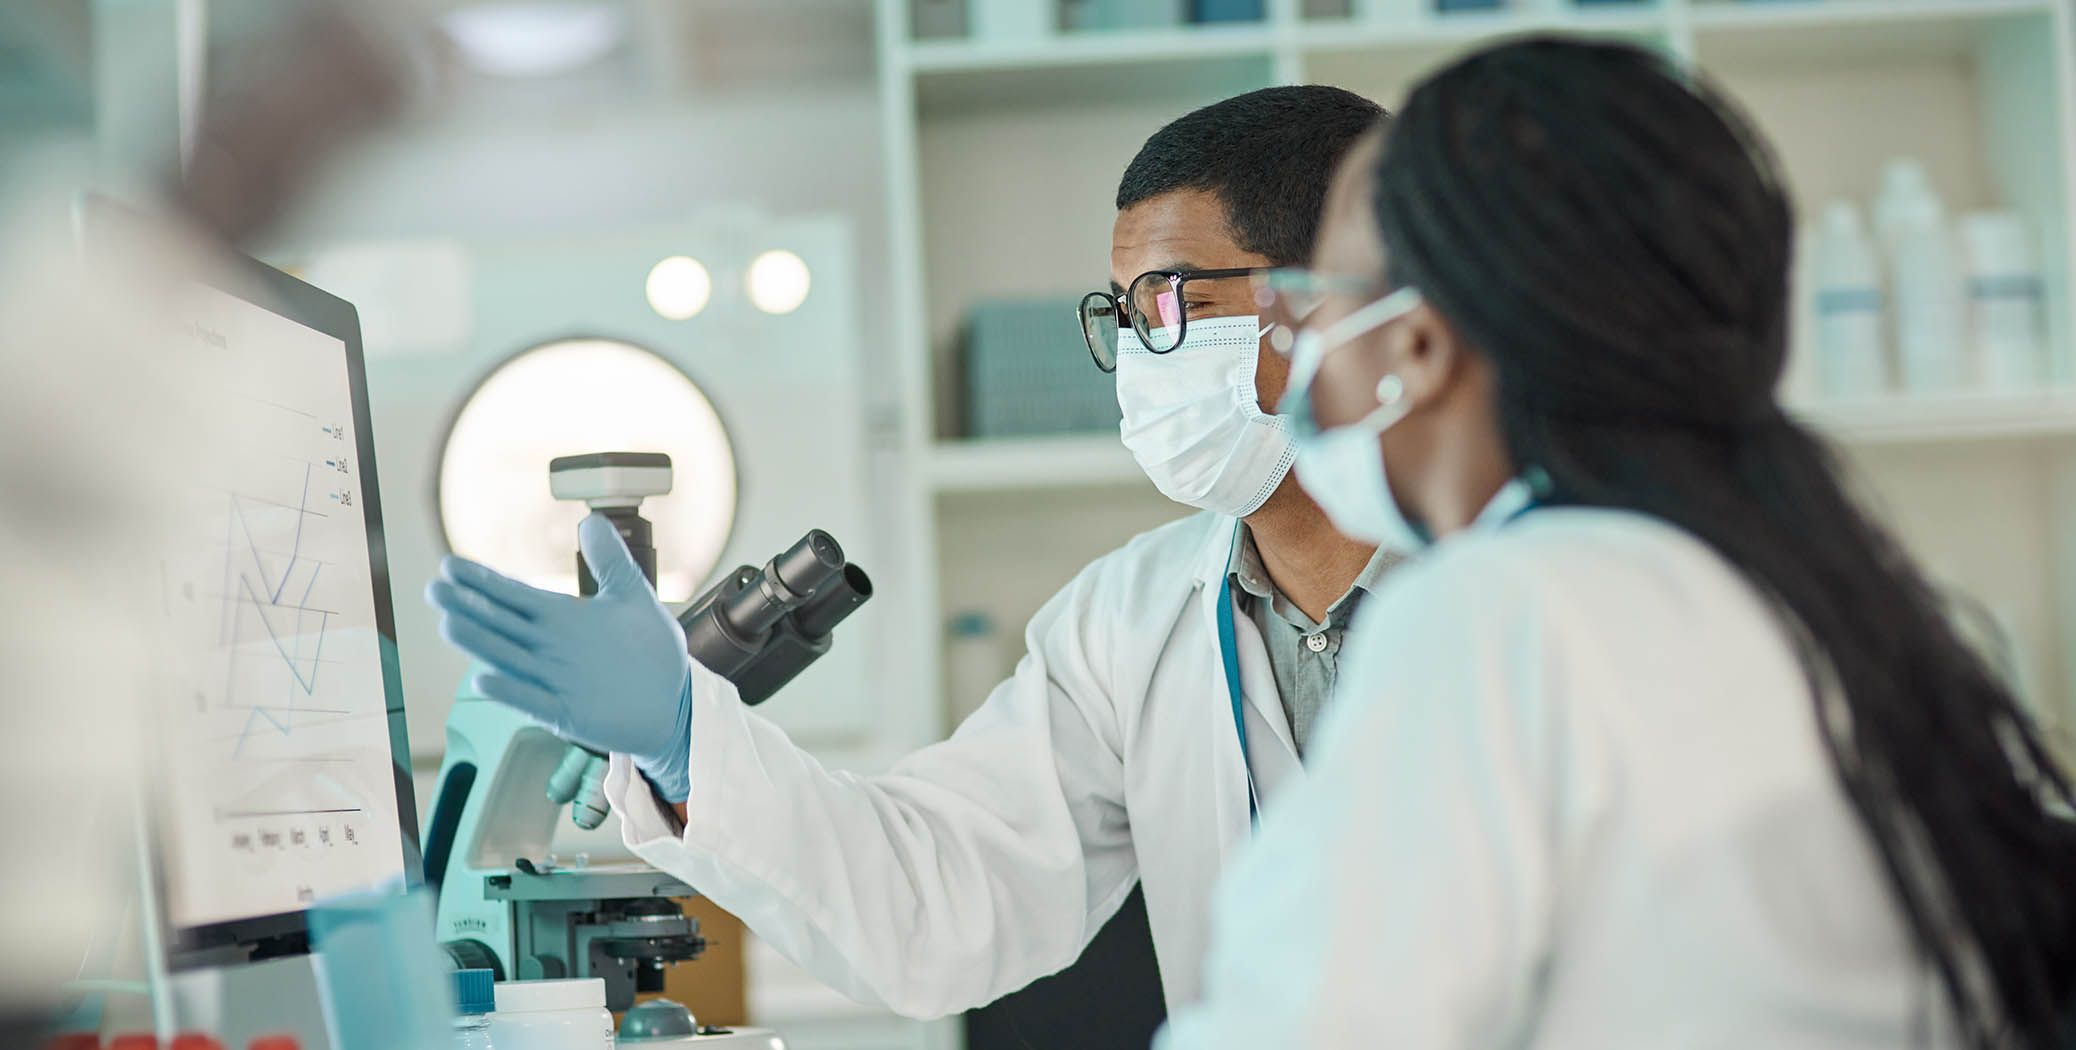 Physicians using Quest's clinical testing services